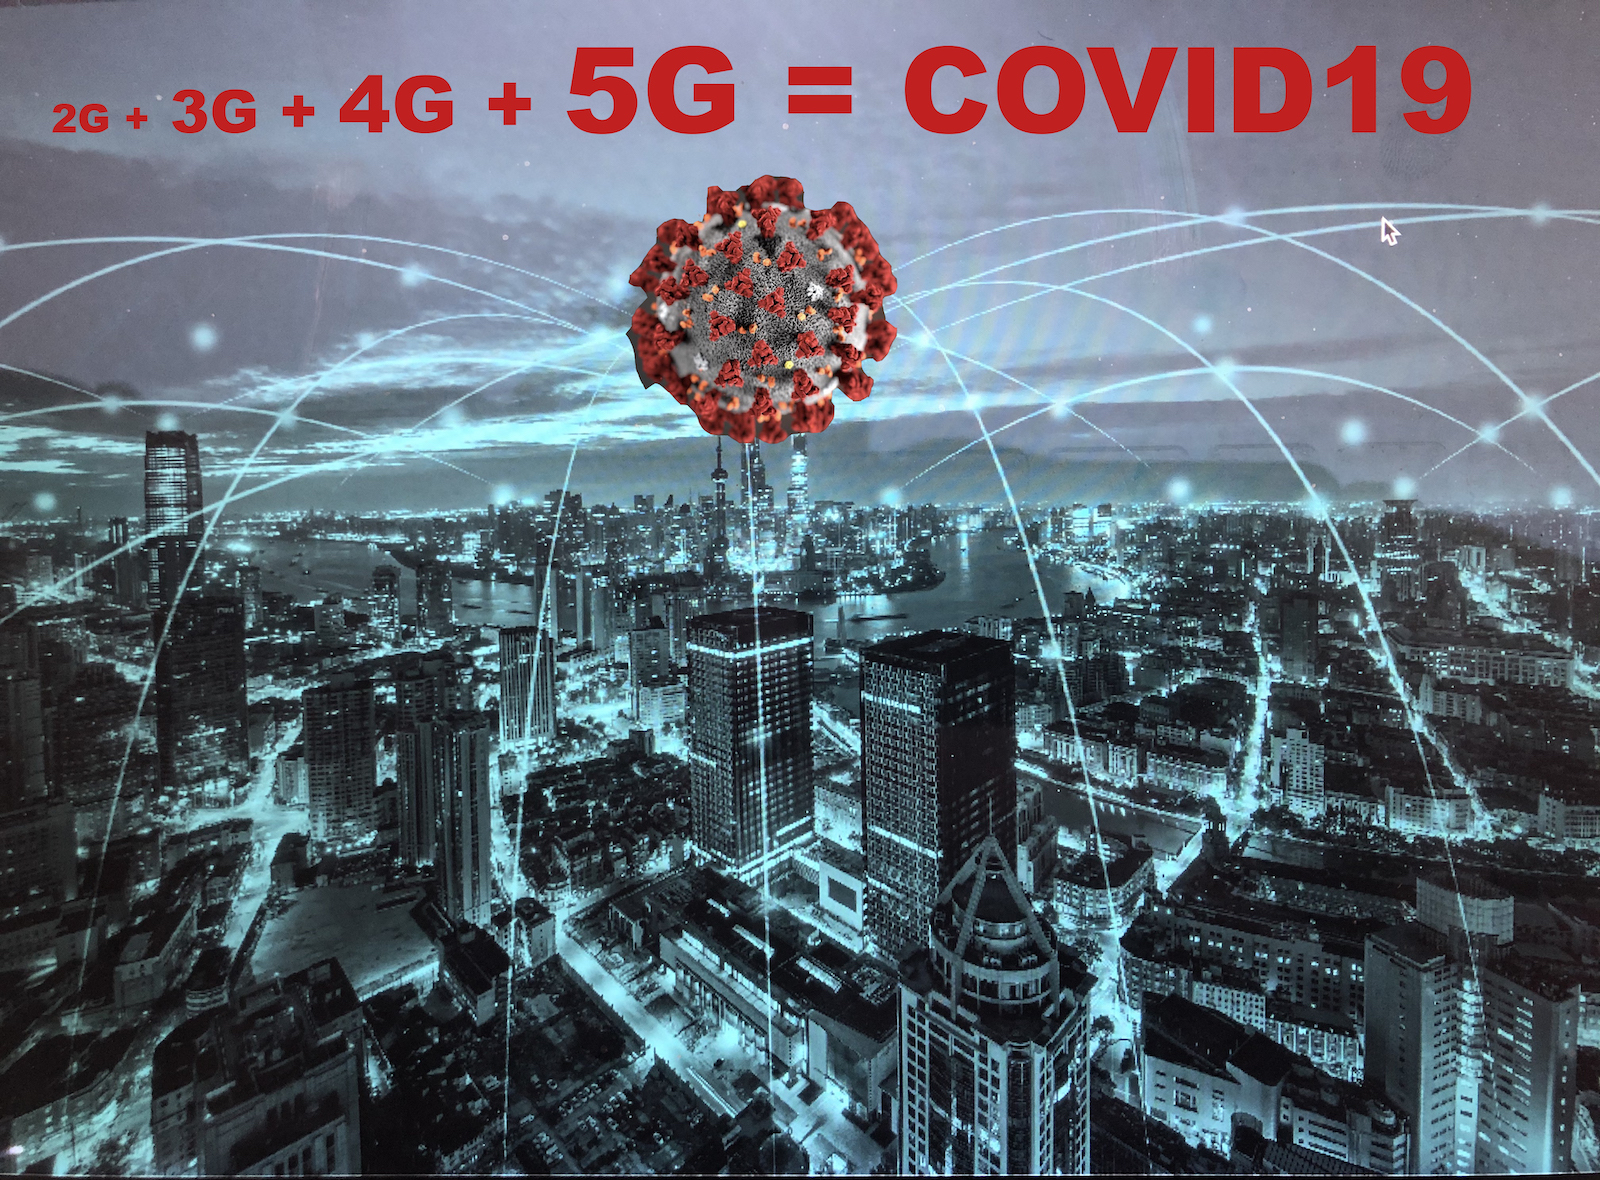 5G CREATES COVID 19. REFUSE MORE 5G INSTALLATIONS - DEACTIVATE THE OLD ONES!